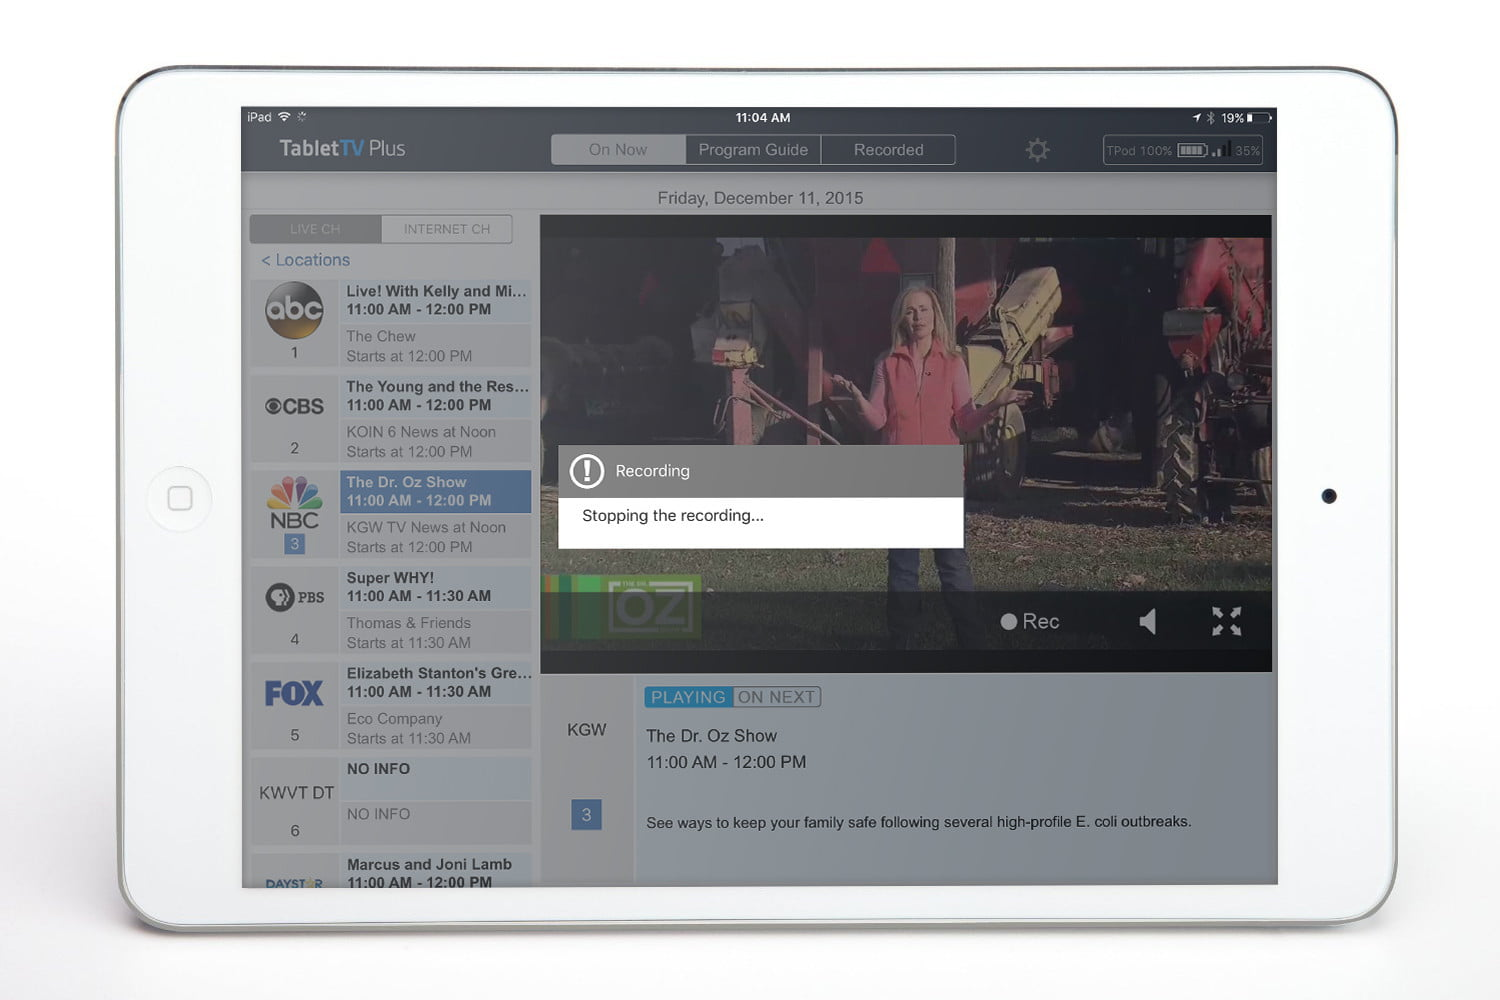 tablet tv first look hands on video review tablettv ios app 3